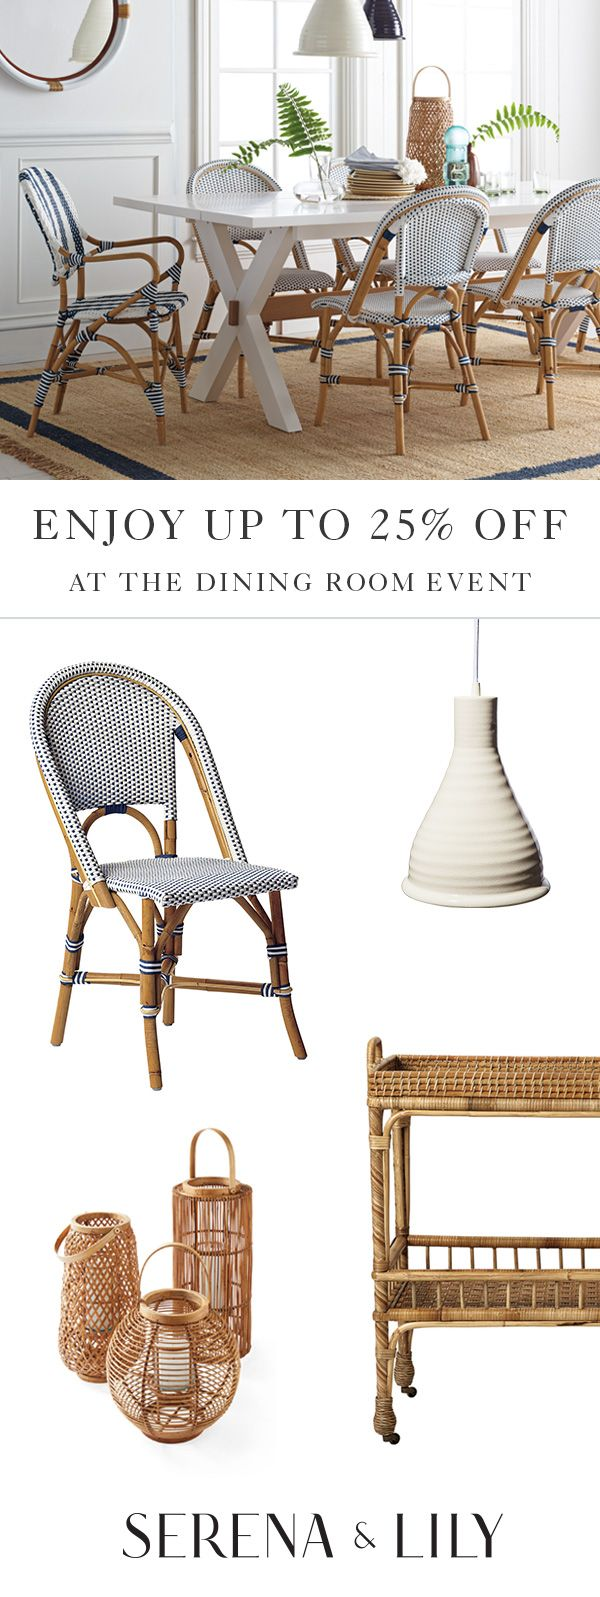 Enjoy up to 25  off at the Dining Room Event at Serena and Lily until. Enjoy up to 25  off at the Dining Room Event at Serena and Lily